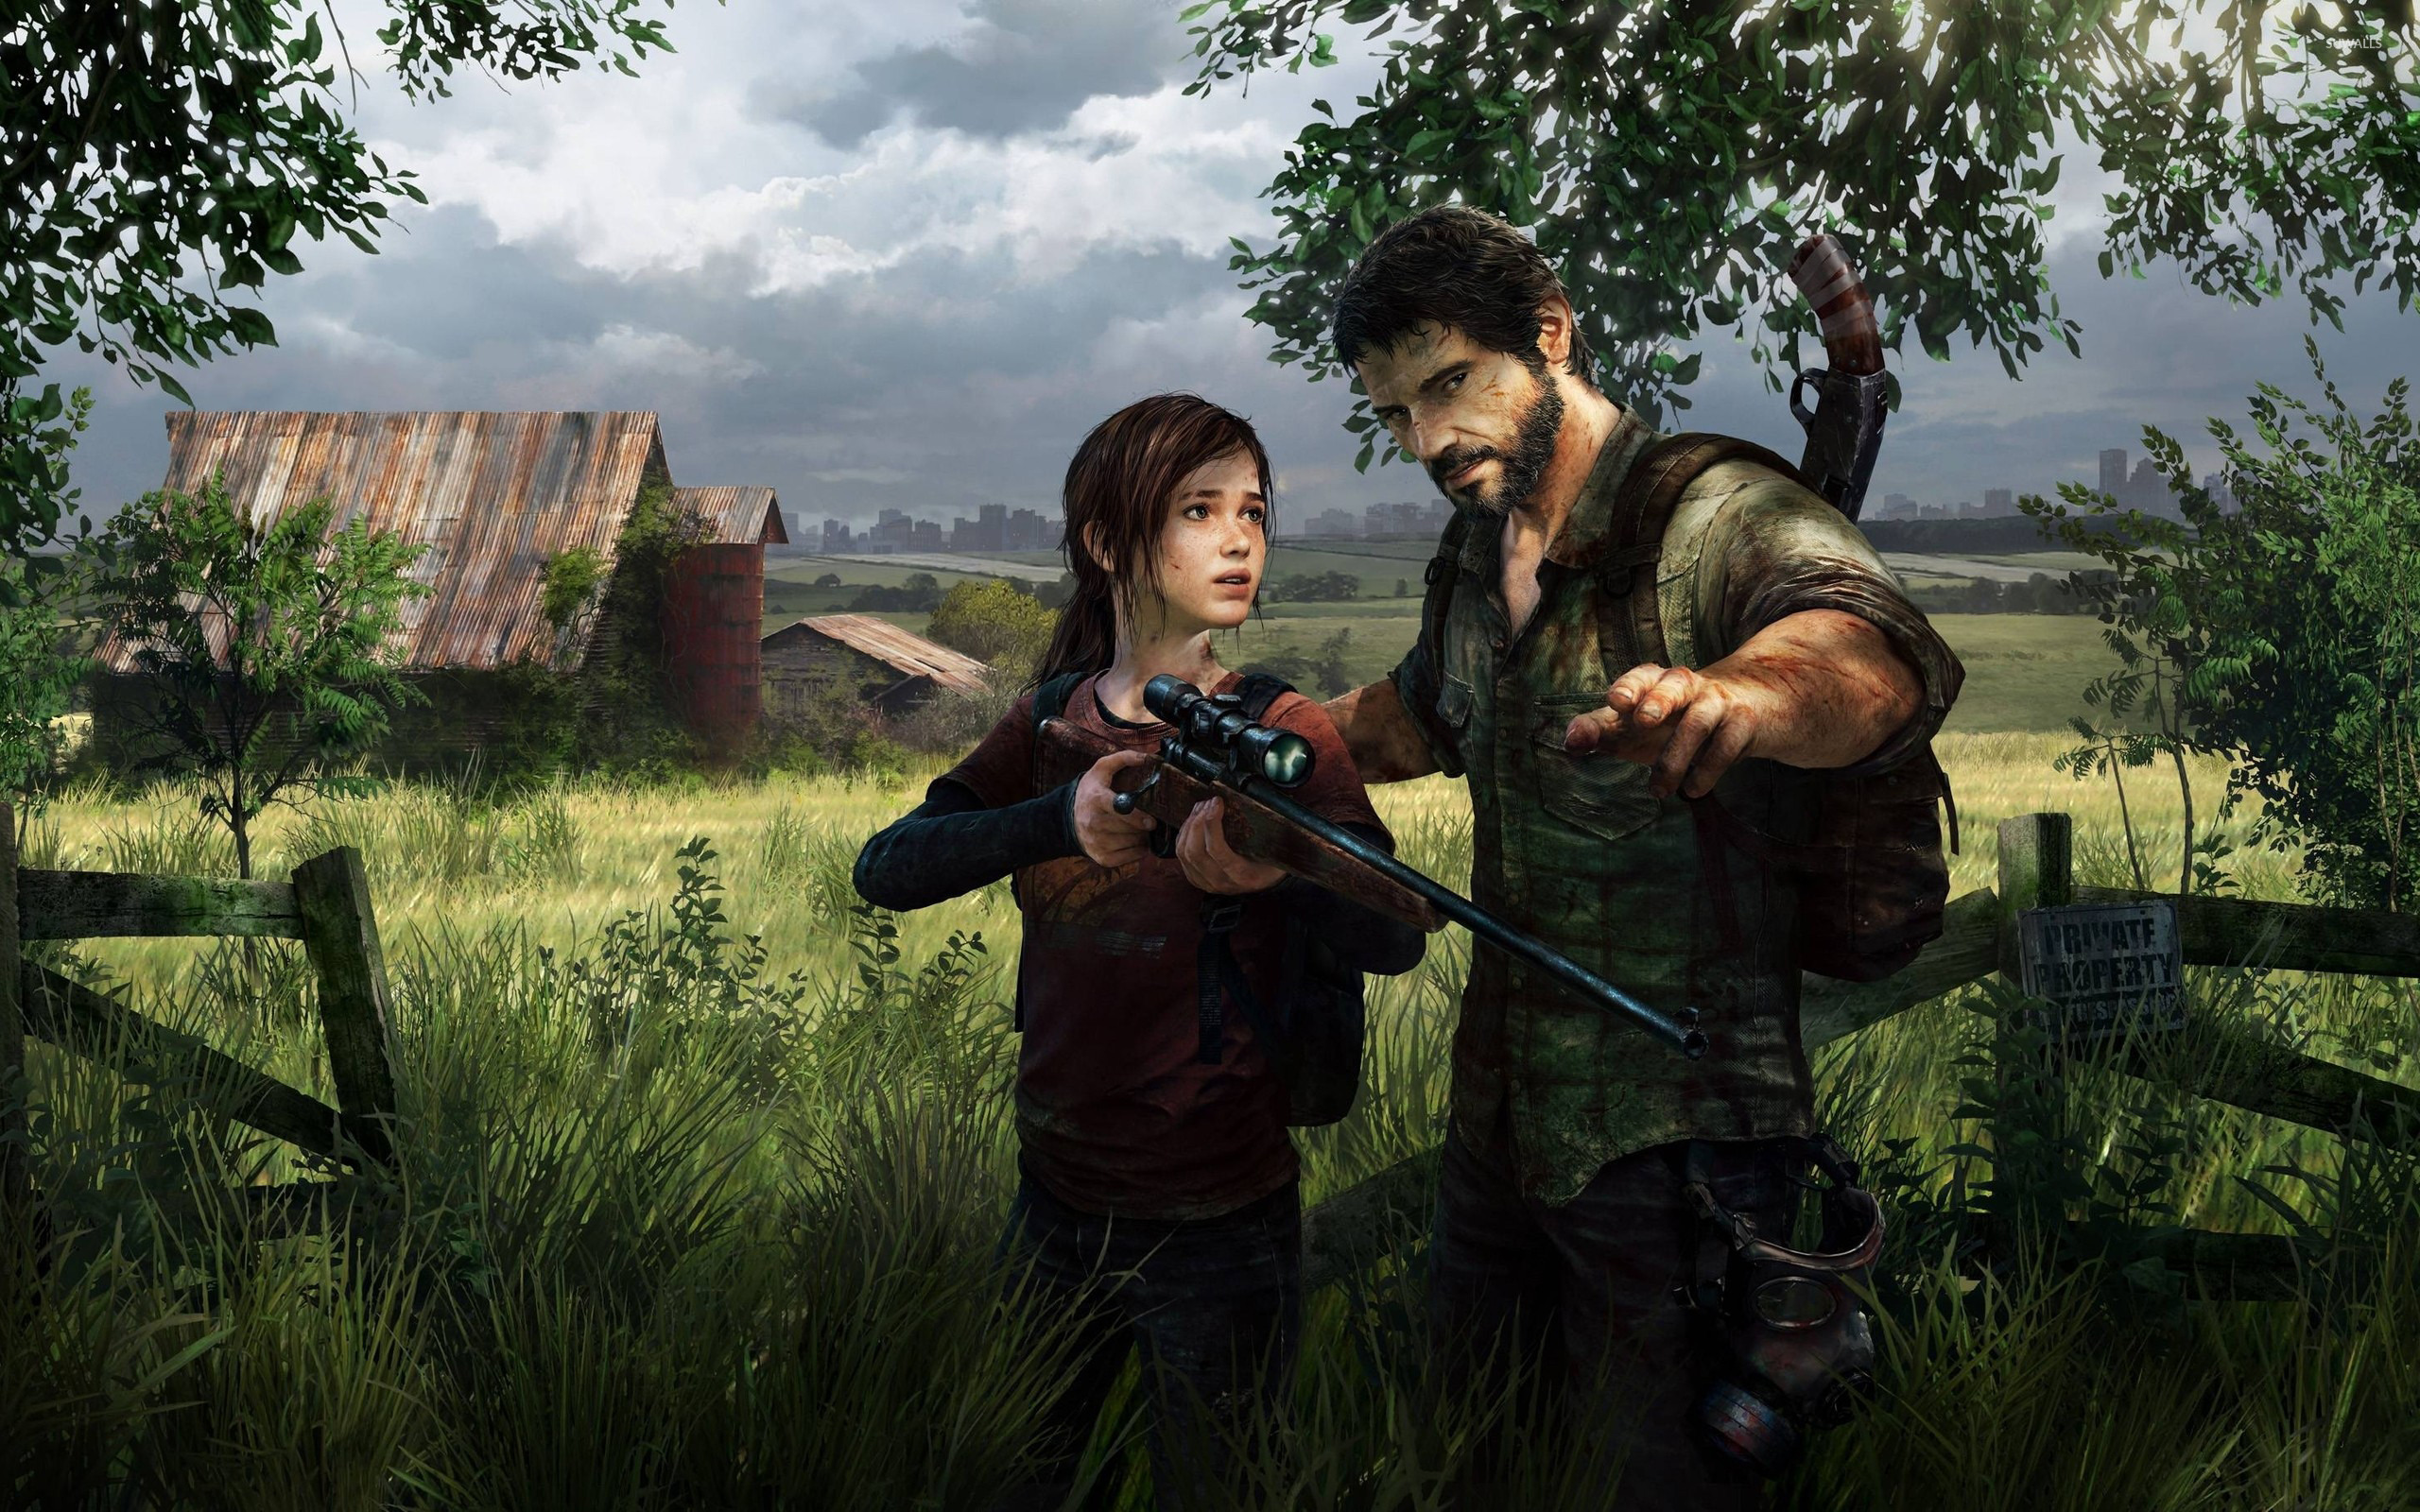 Ellie And Joel The Last Of Us 2 Wallpaper Game Wallpapers